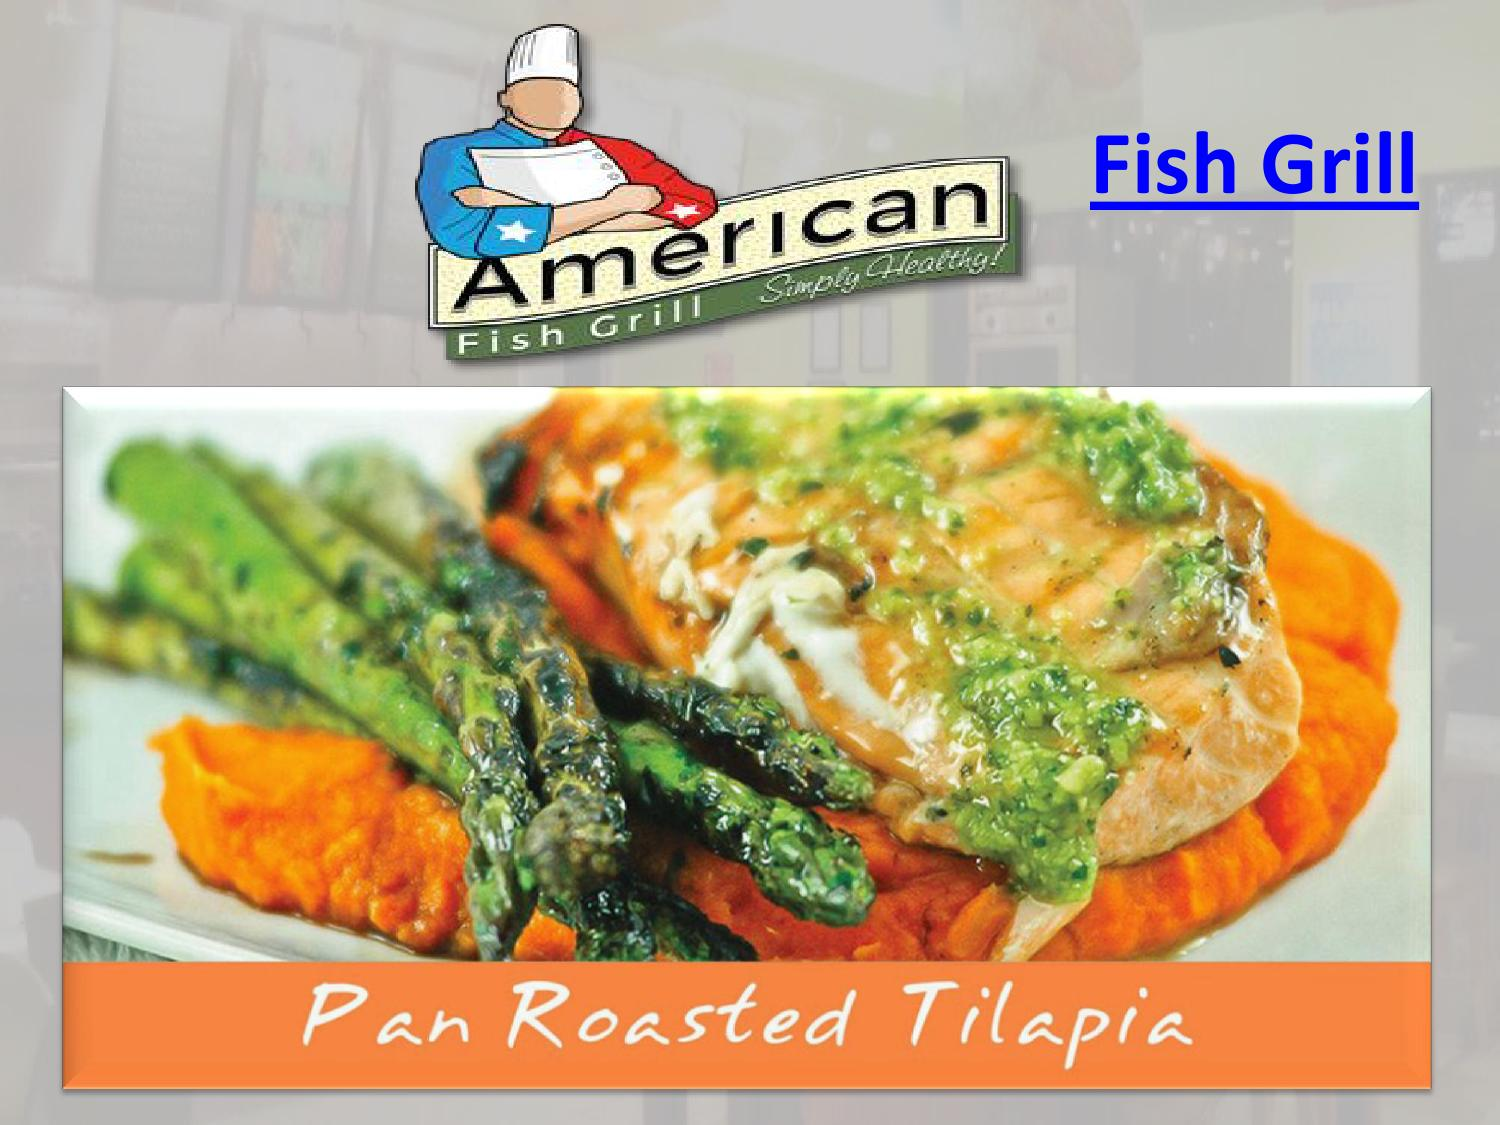 Fish grill by fish grill issuu for Fish and grill